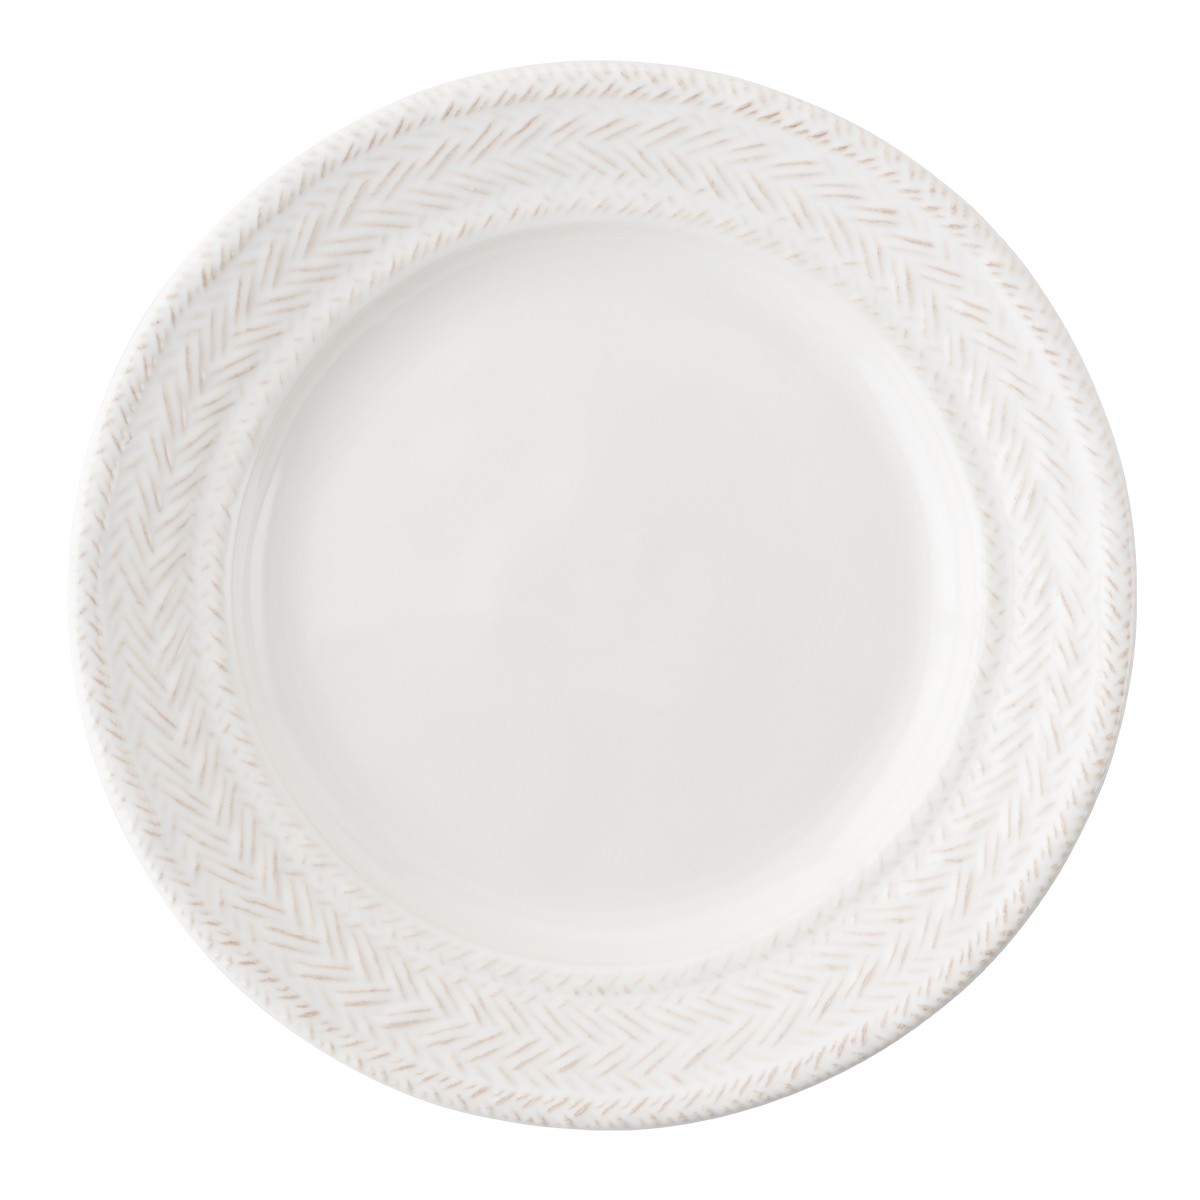 Juliska Le Panier Whitewash Side/Cocktail Plate